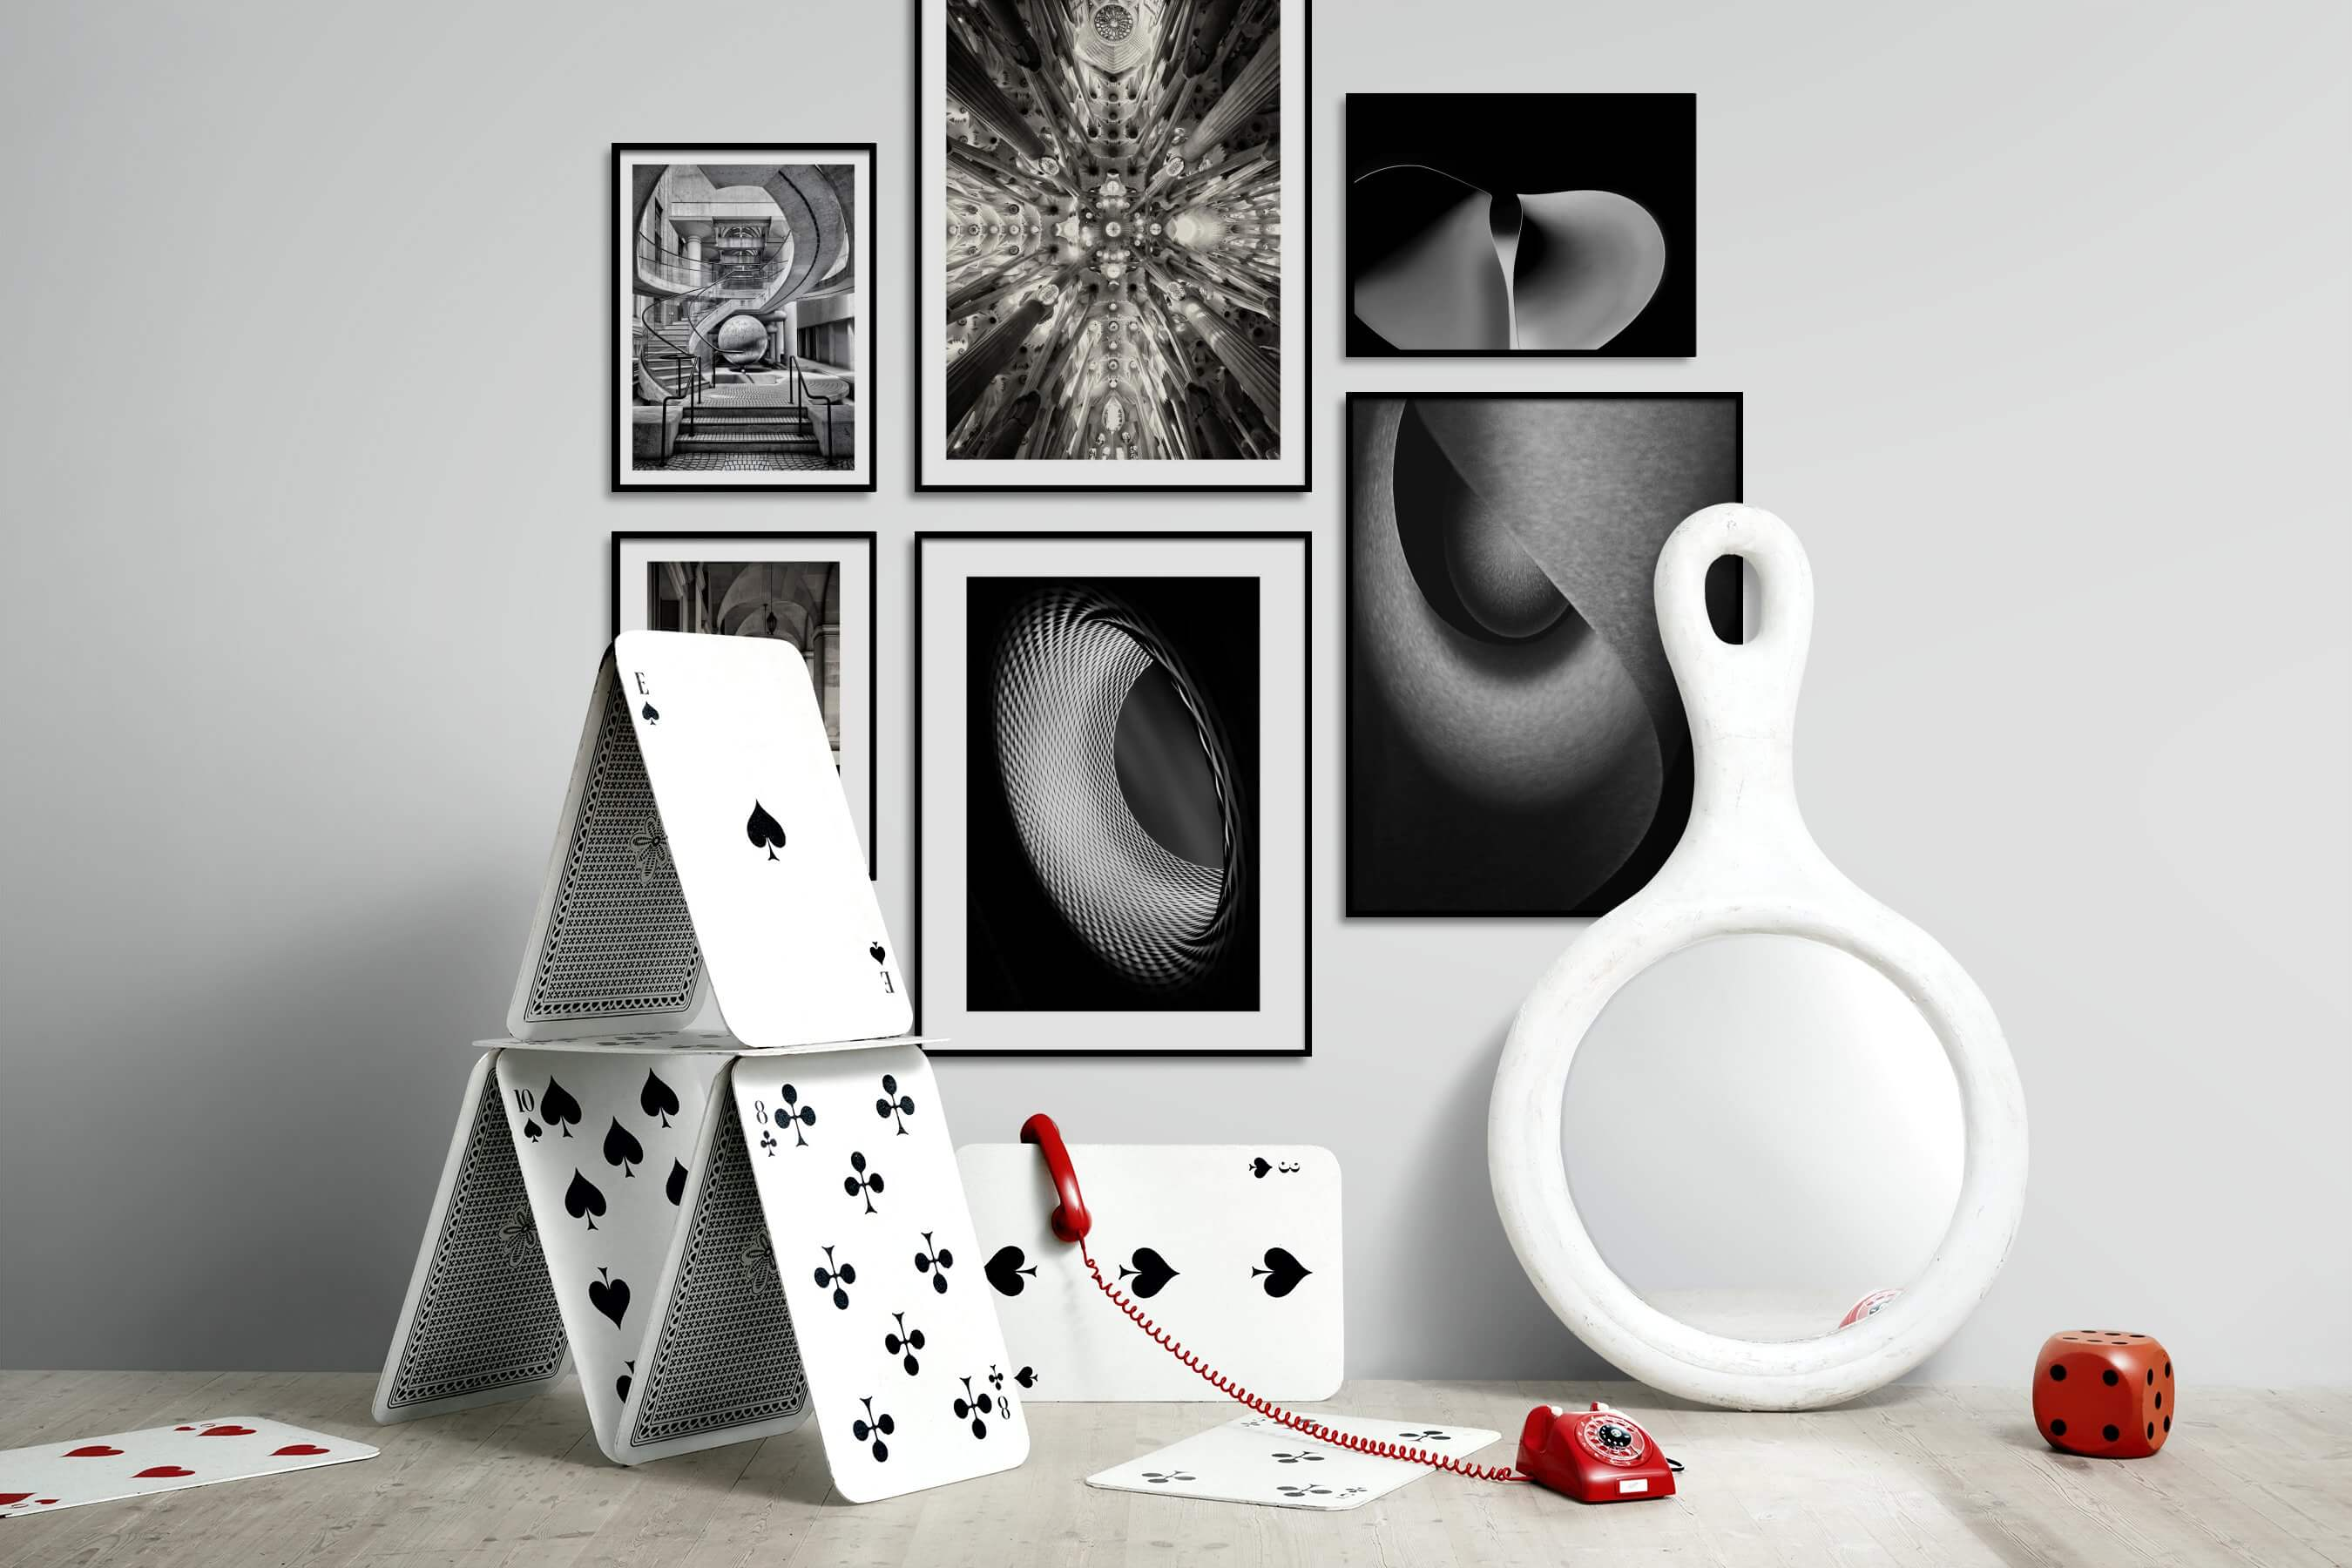 Gallery wall idea with six framed pictures arranged on a wall depicting Black & White, For the Maximalist, For the Moderate, Dark Tones, and For the Minimalist